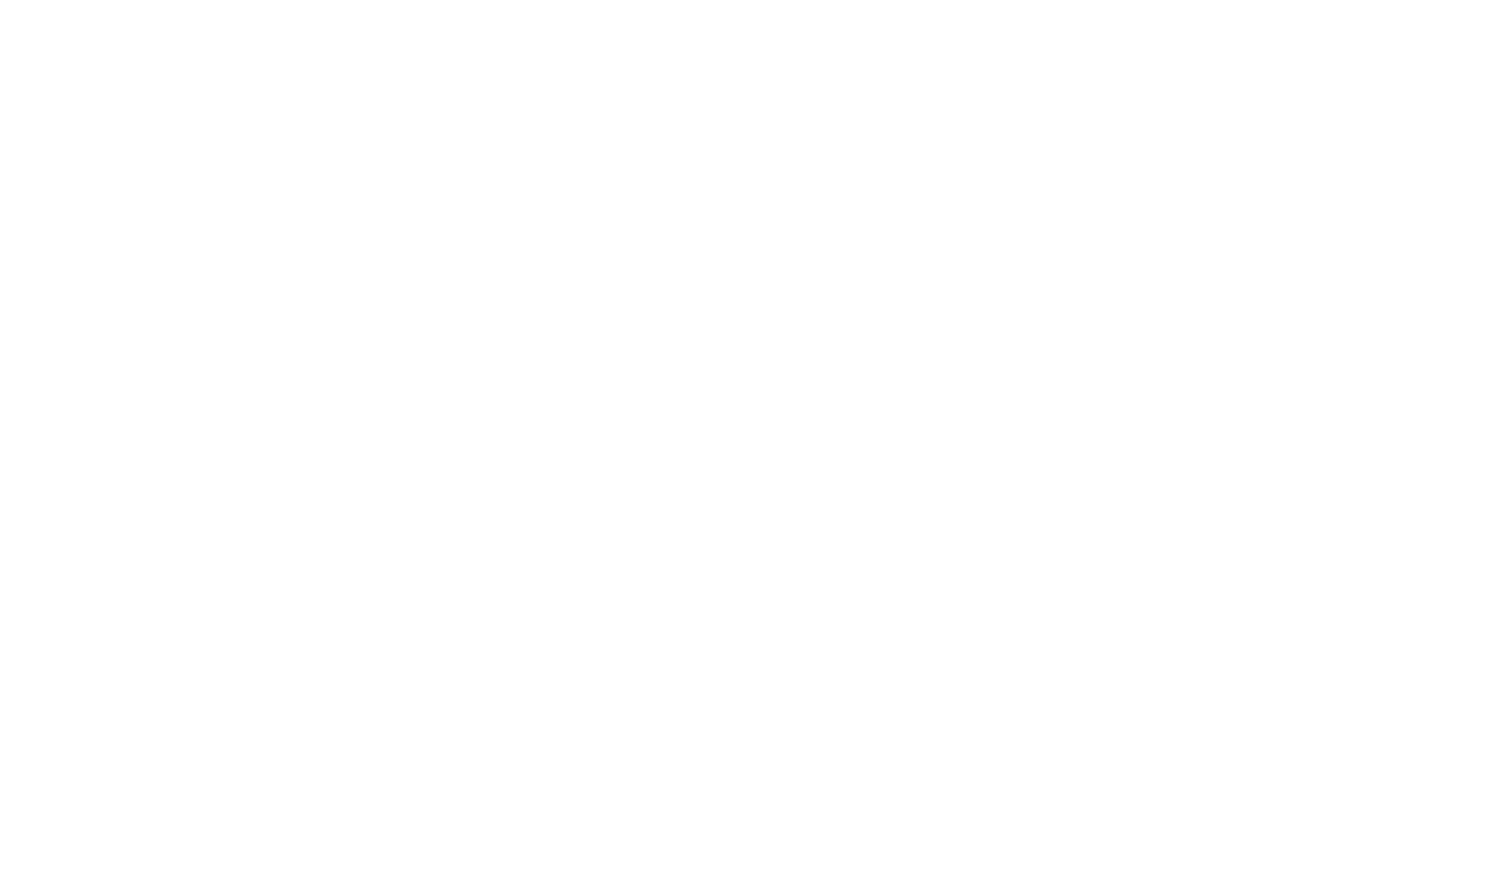 Jones Creek